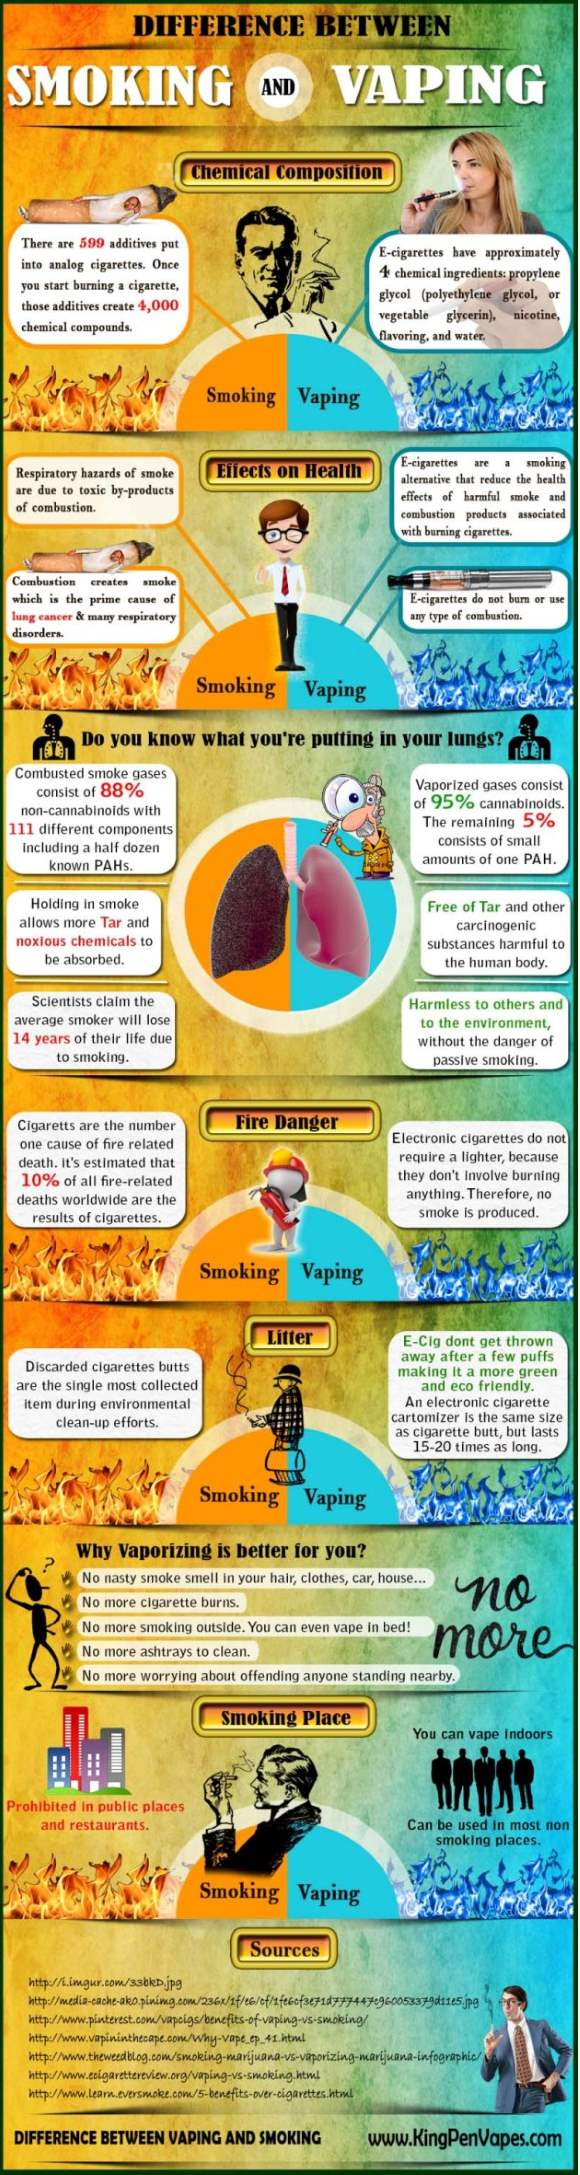 Difference between smoking and vaping - Infographic